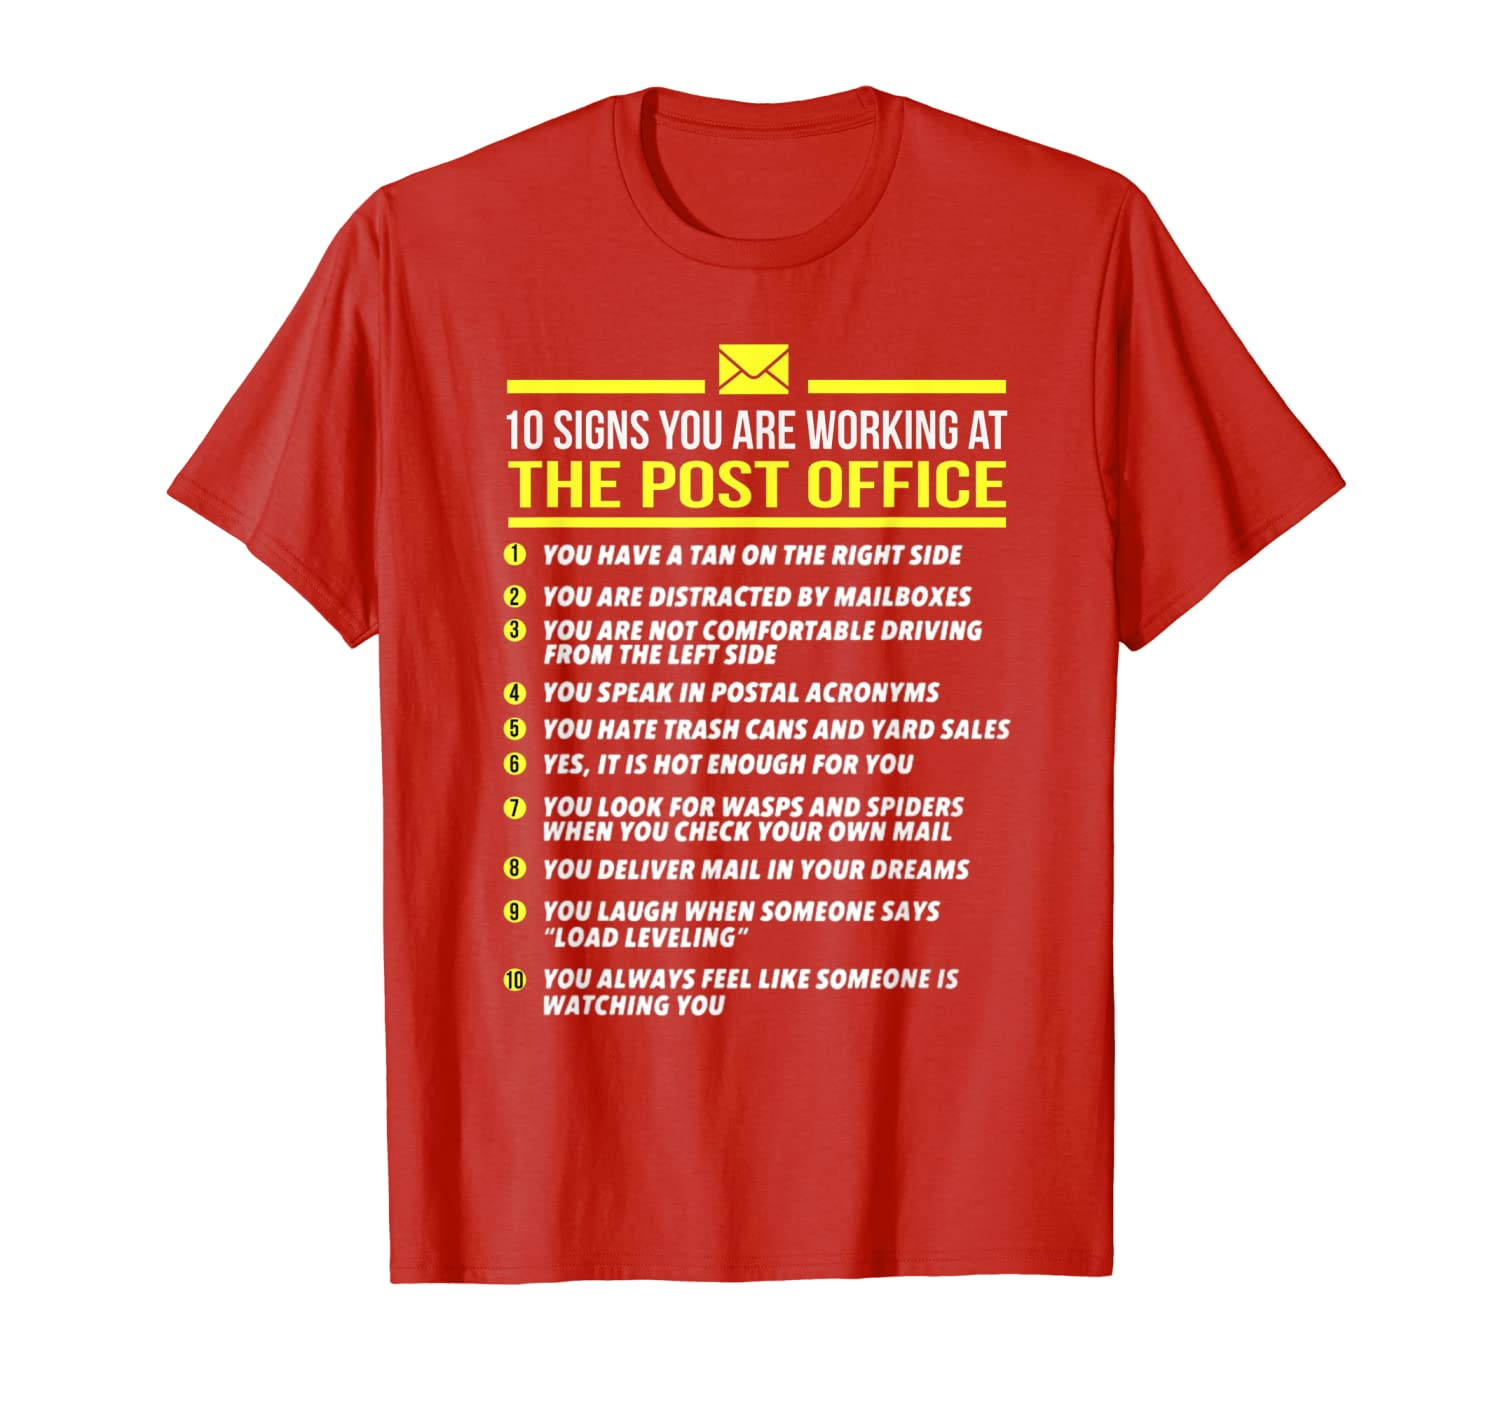 US Postal Service T Shirt -10 Signs You're Working at Post